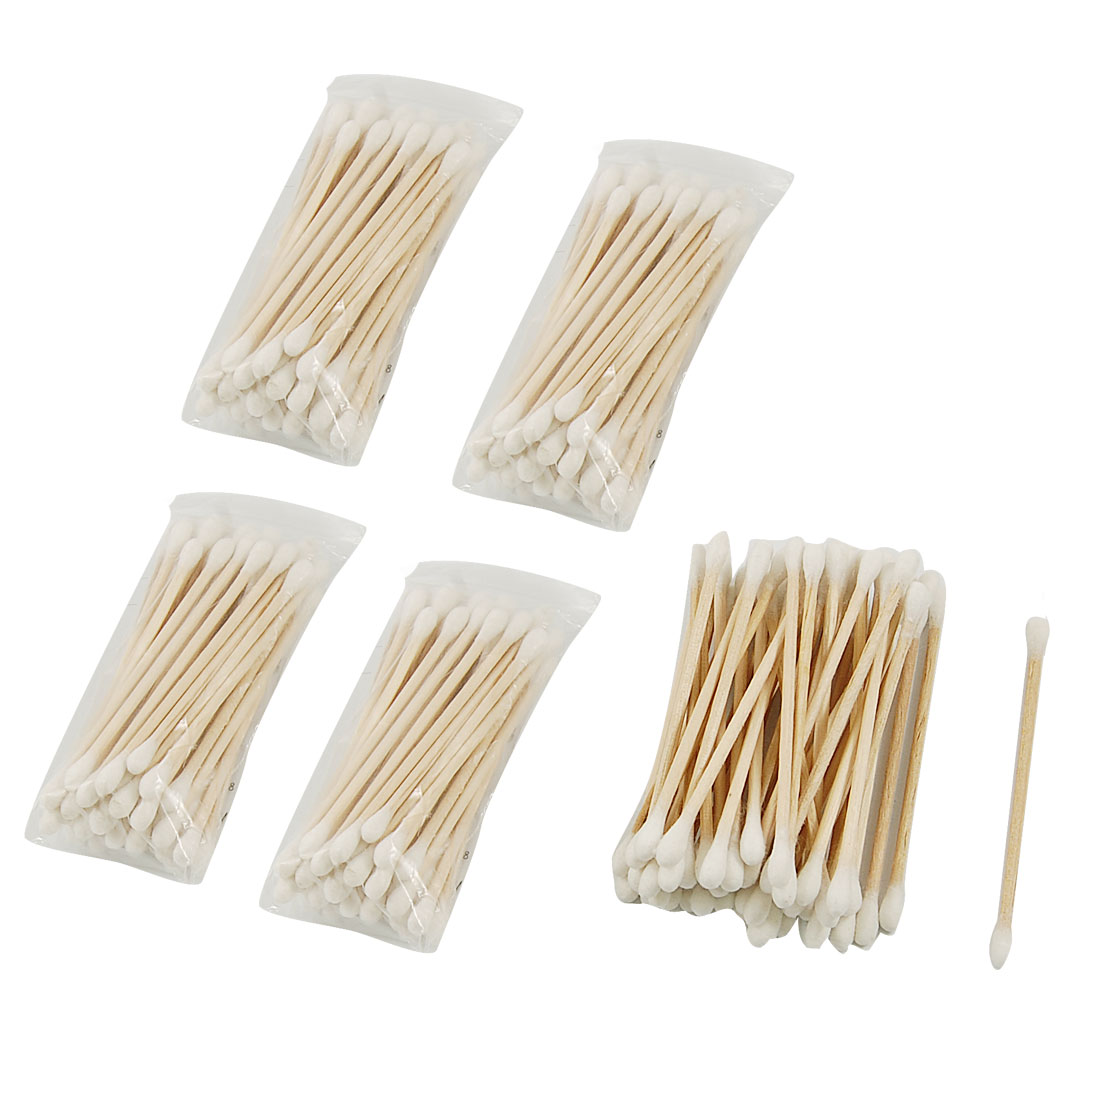 5 Packs Disposable Double Head Wooden Stick Cotton Swabs Buds